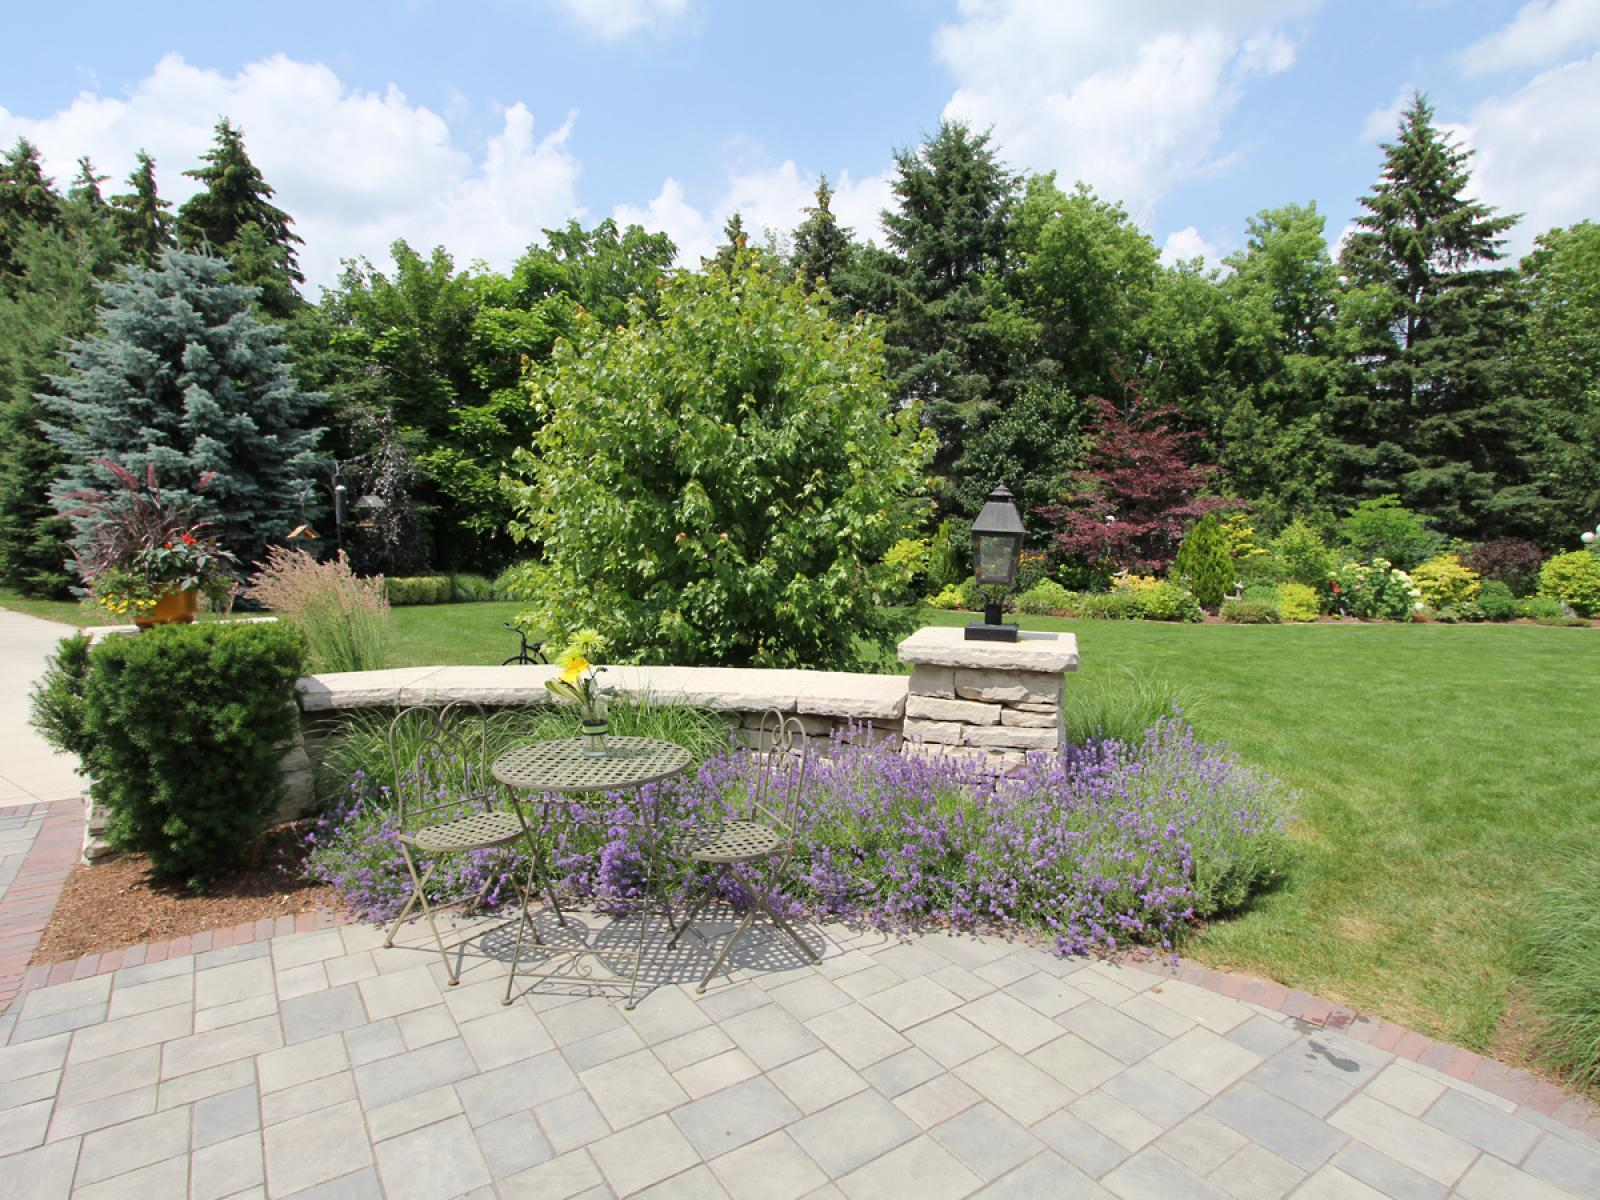 The Return on Investment of Landscaping